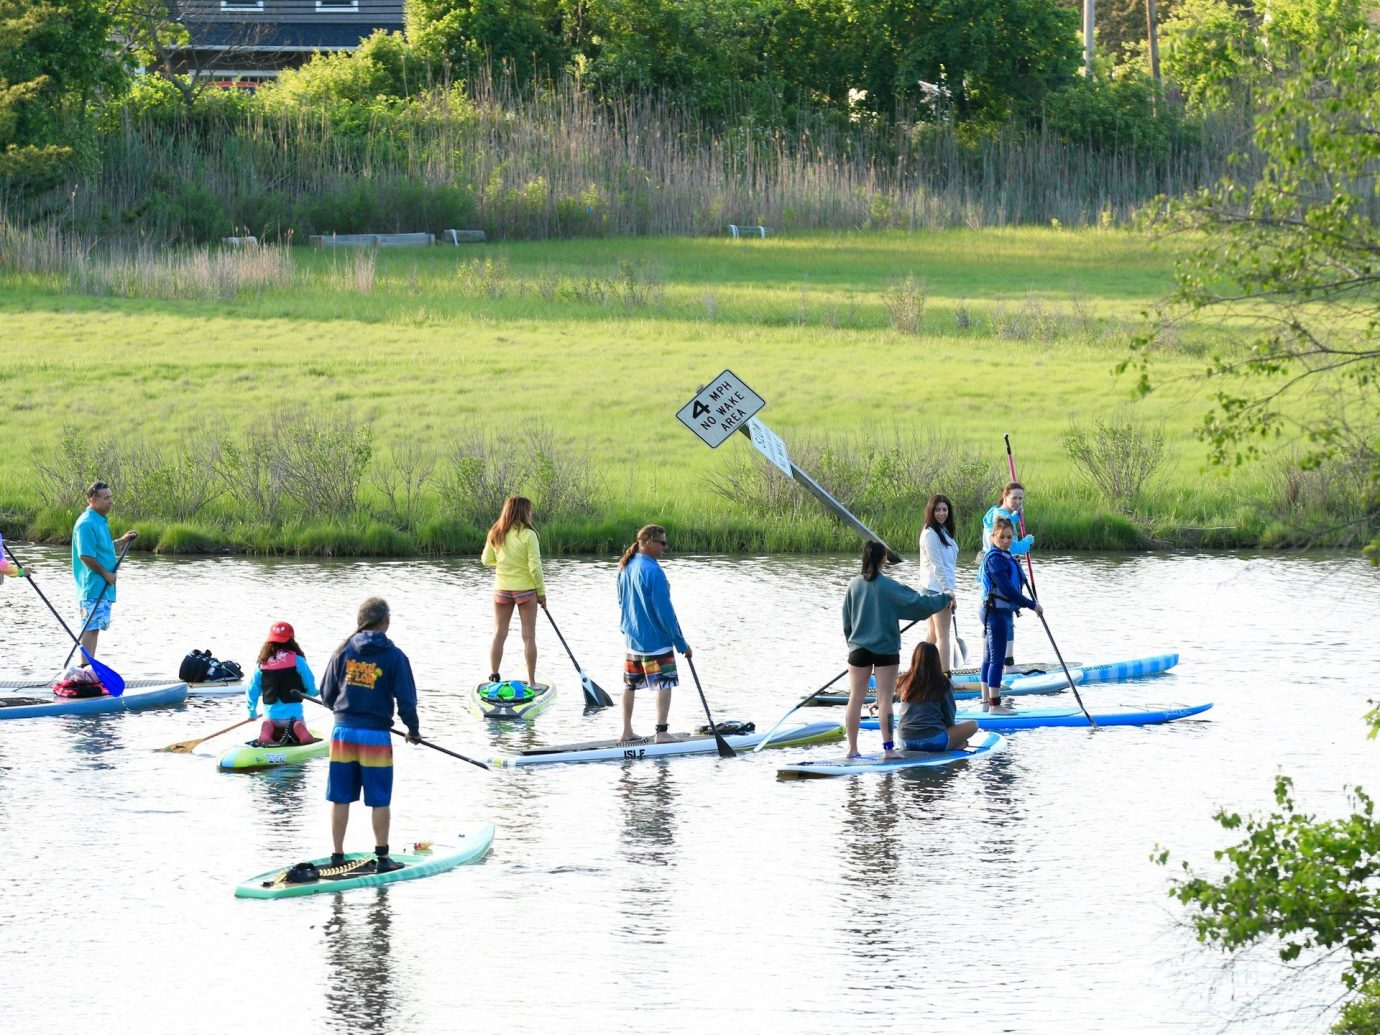 activities grass Greenery Lake Nature Outdoor Activities Outdoors paddleboarding people remote River Trip Ideas Water activities Water Sports outdoor tree Sport water canoeing boating vehicle watercraft rowing water sport Rowing paddle Boat waterskiing sports